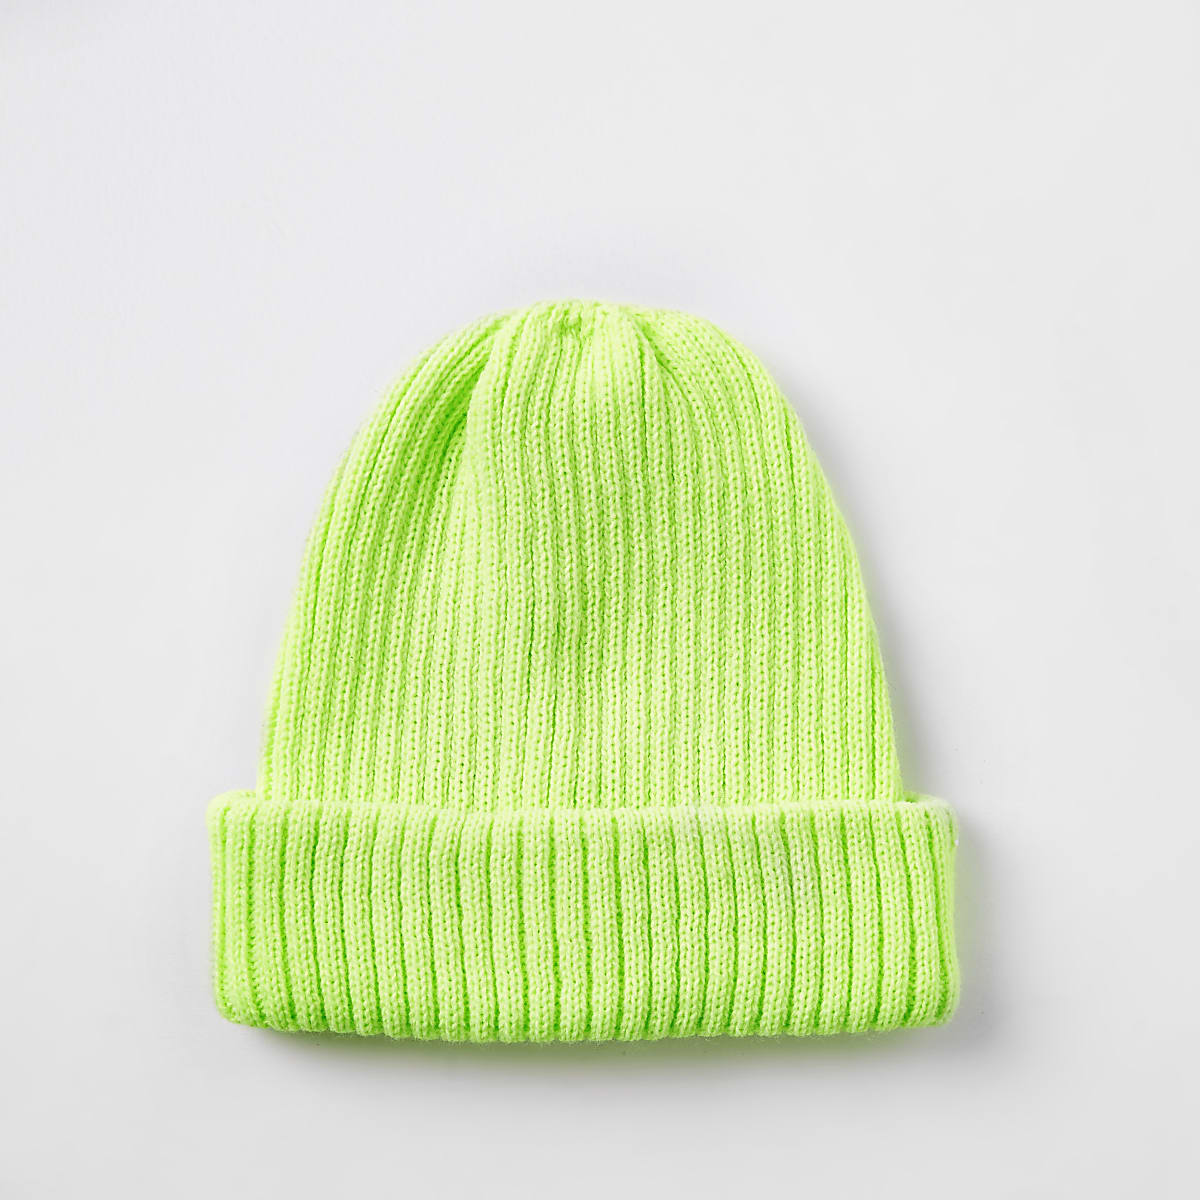 Neon yellow fisherman knit beanie hat